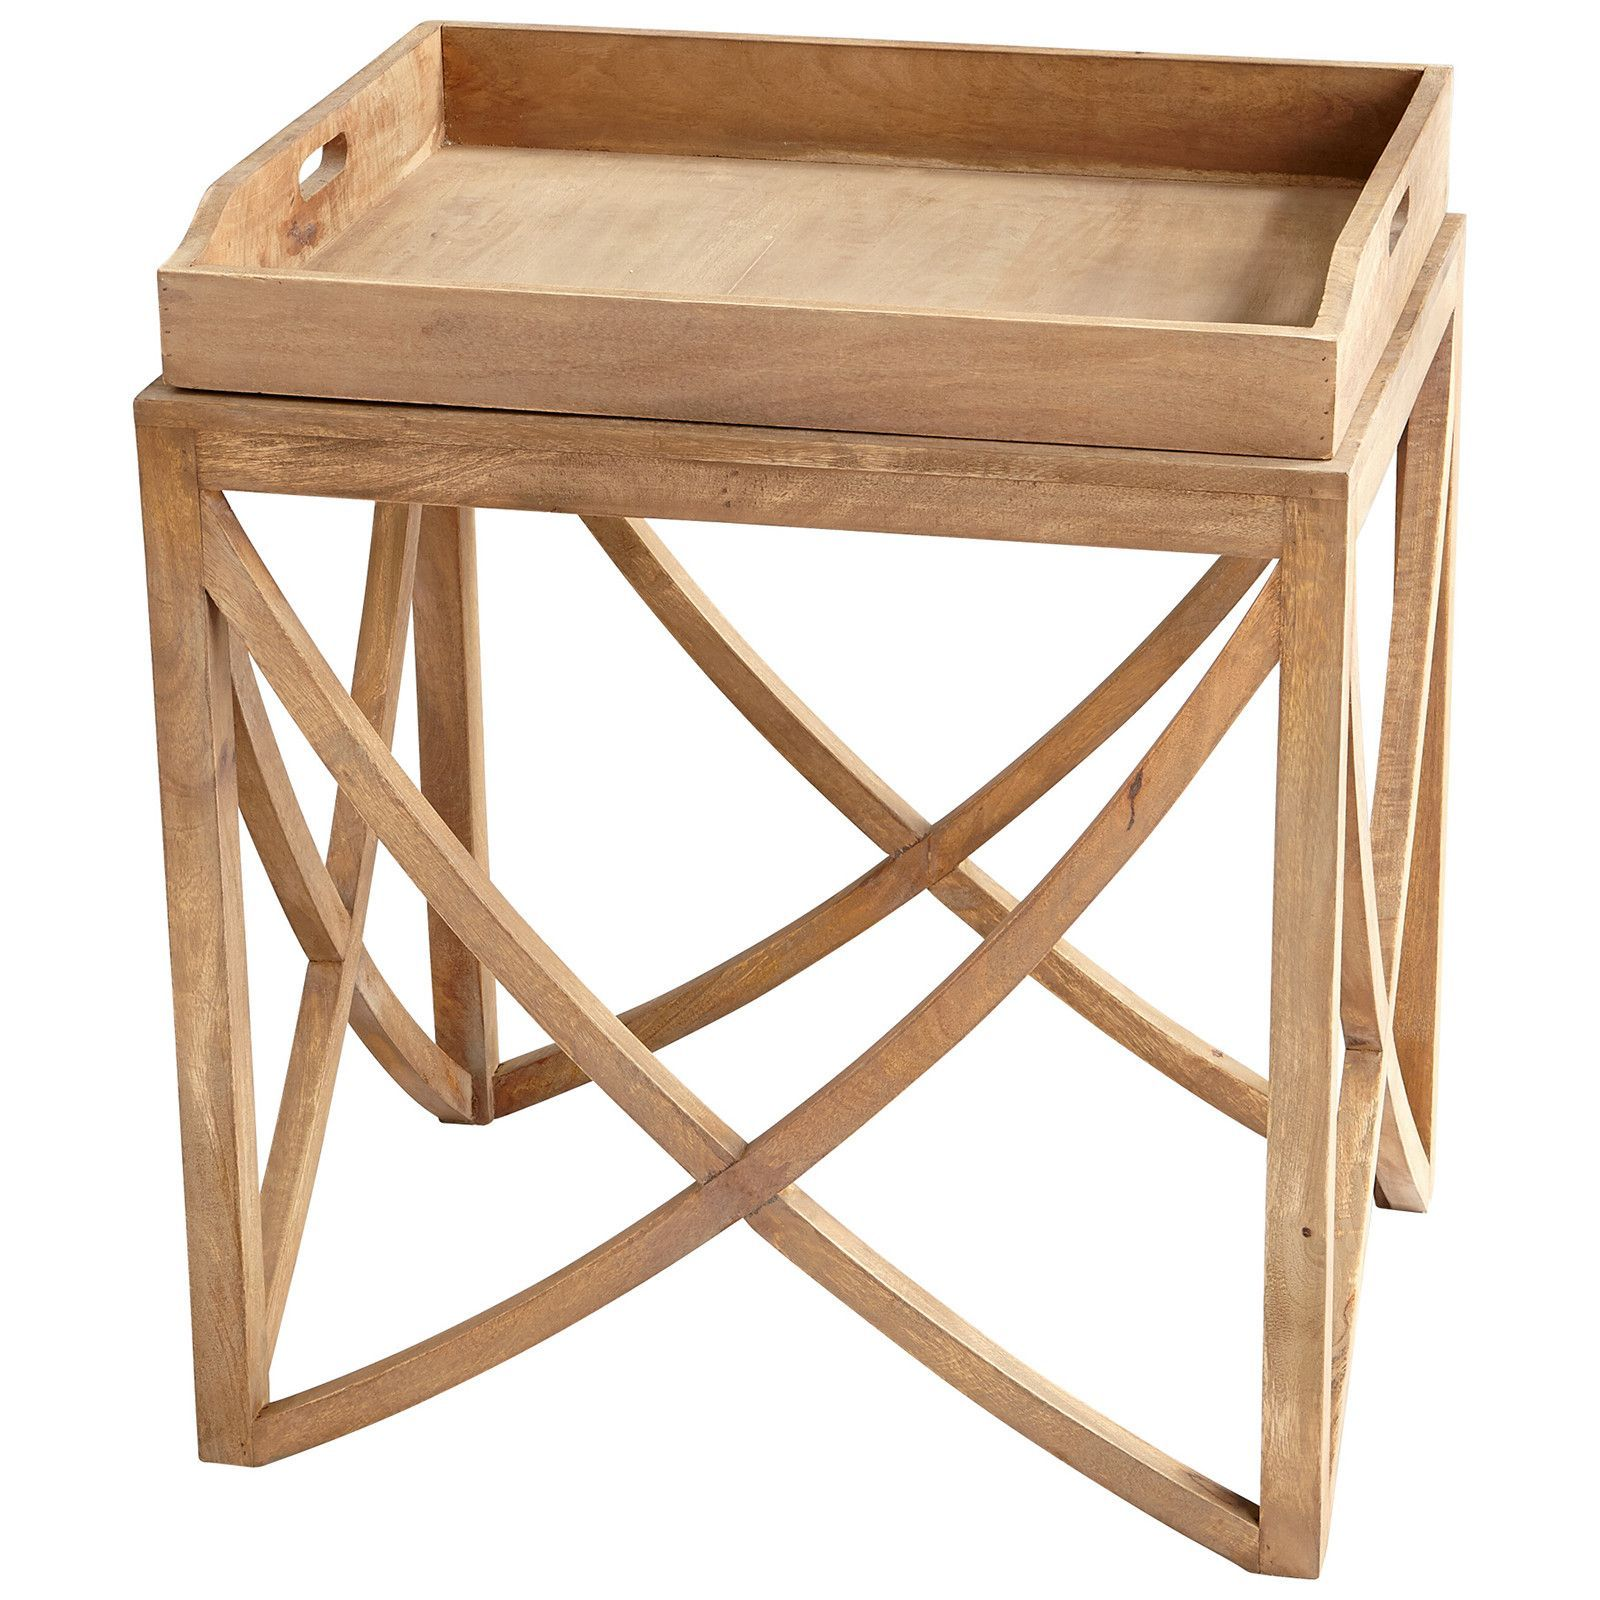 Lancer Tray Table in Light French Gray